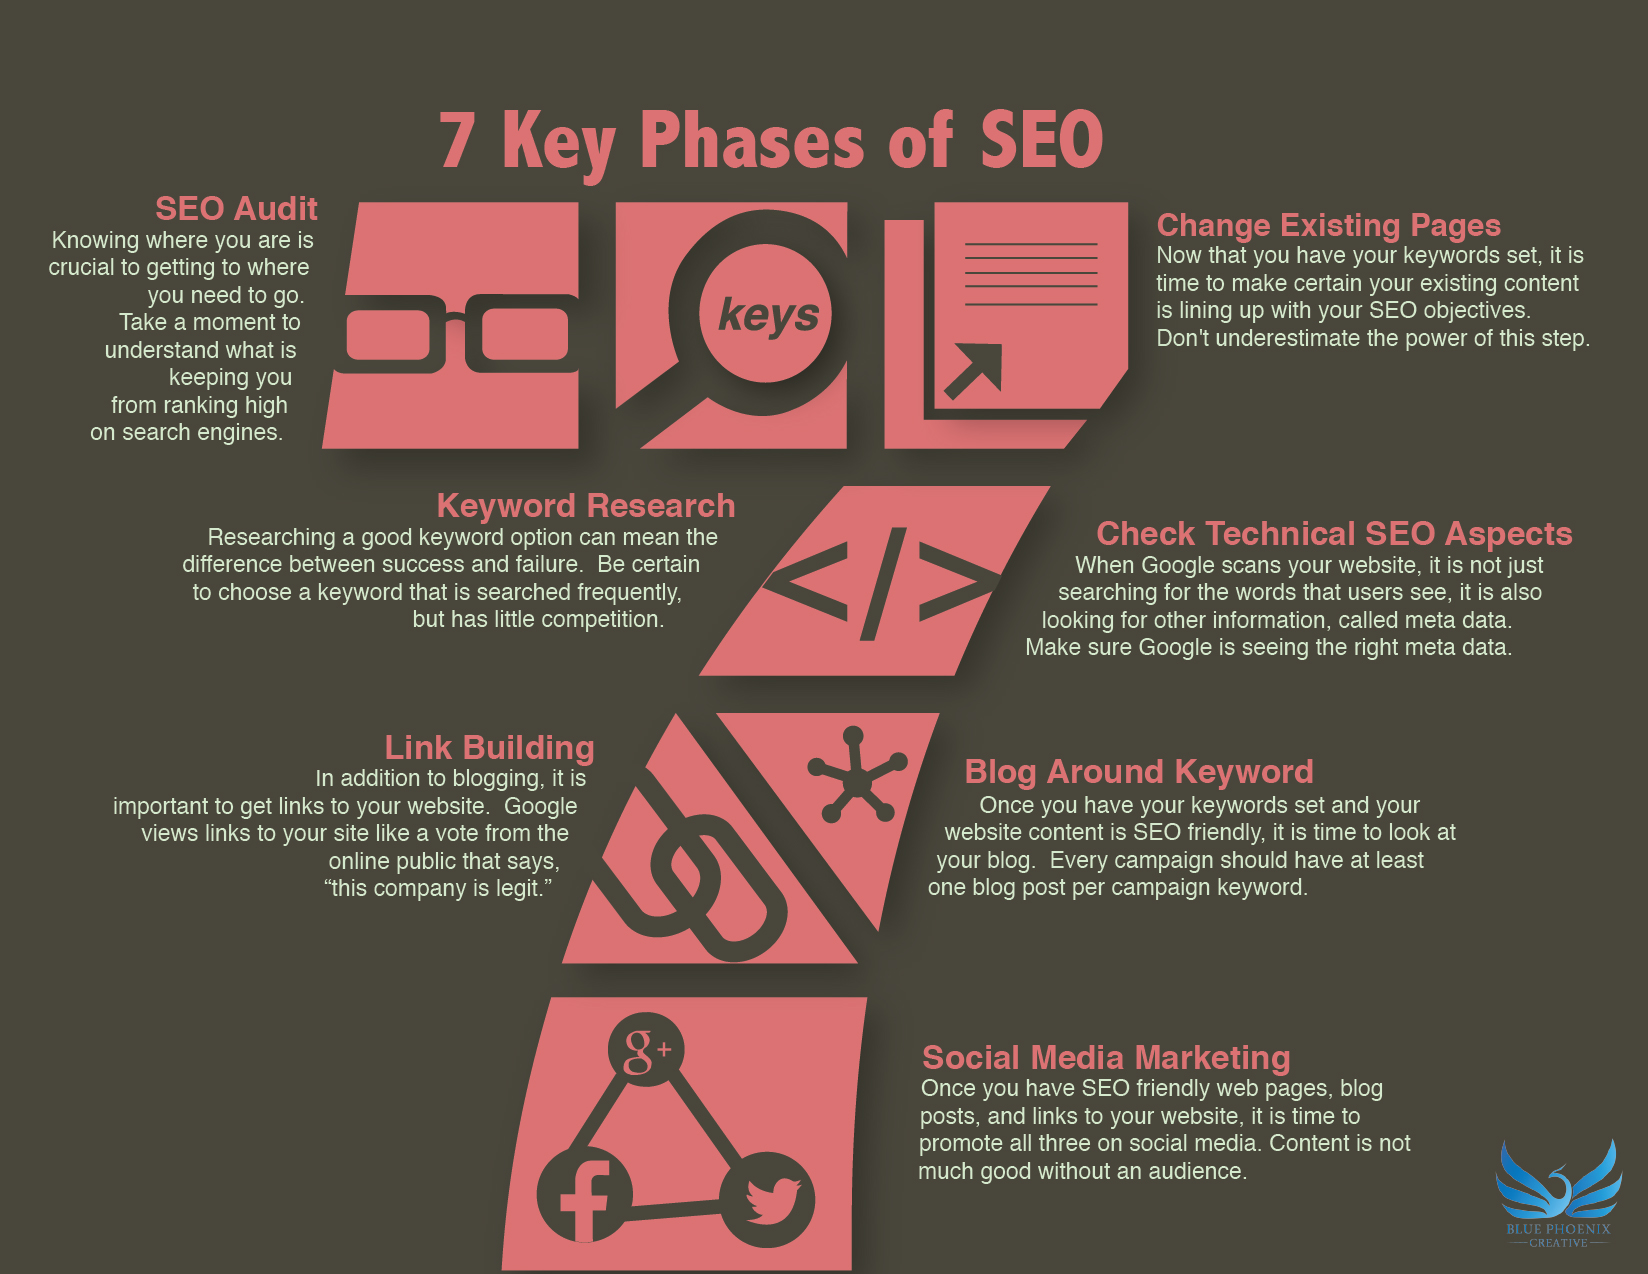 test http://blog.blue-phoenix.net/7-key-phases-of-seo-infographic